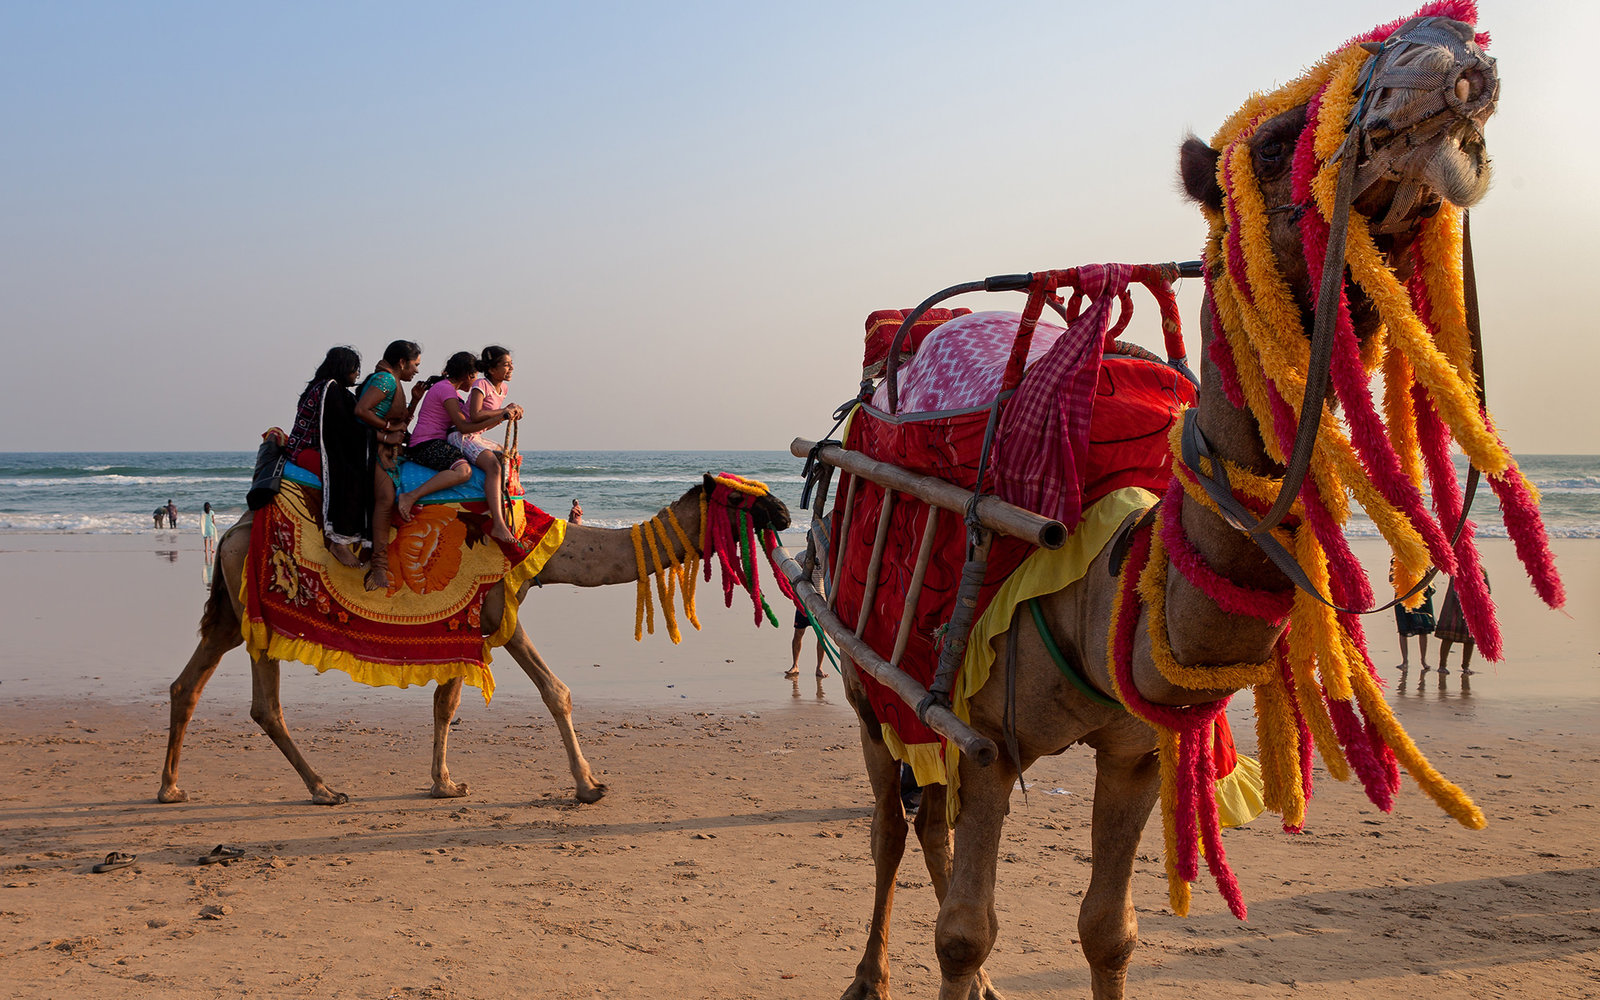 [UNVERIFIED CONTENT] Camels wearing colorful garlands on the beach and Indian tourists riding them during holidays in Puri, Orissa, India.